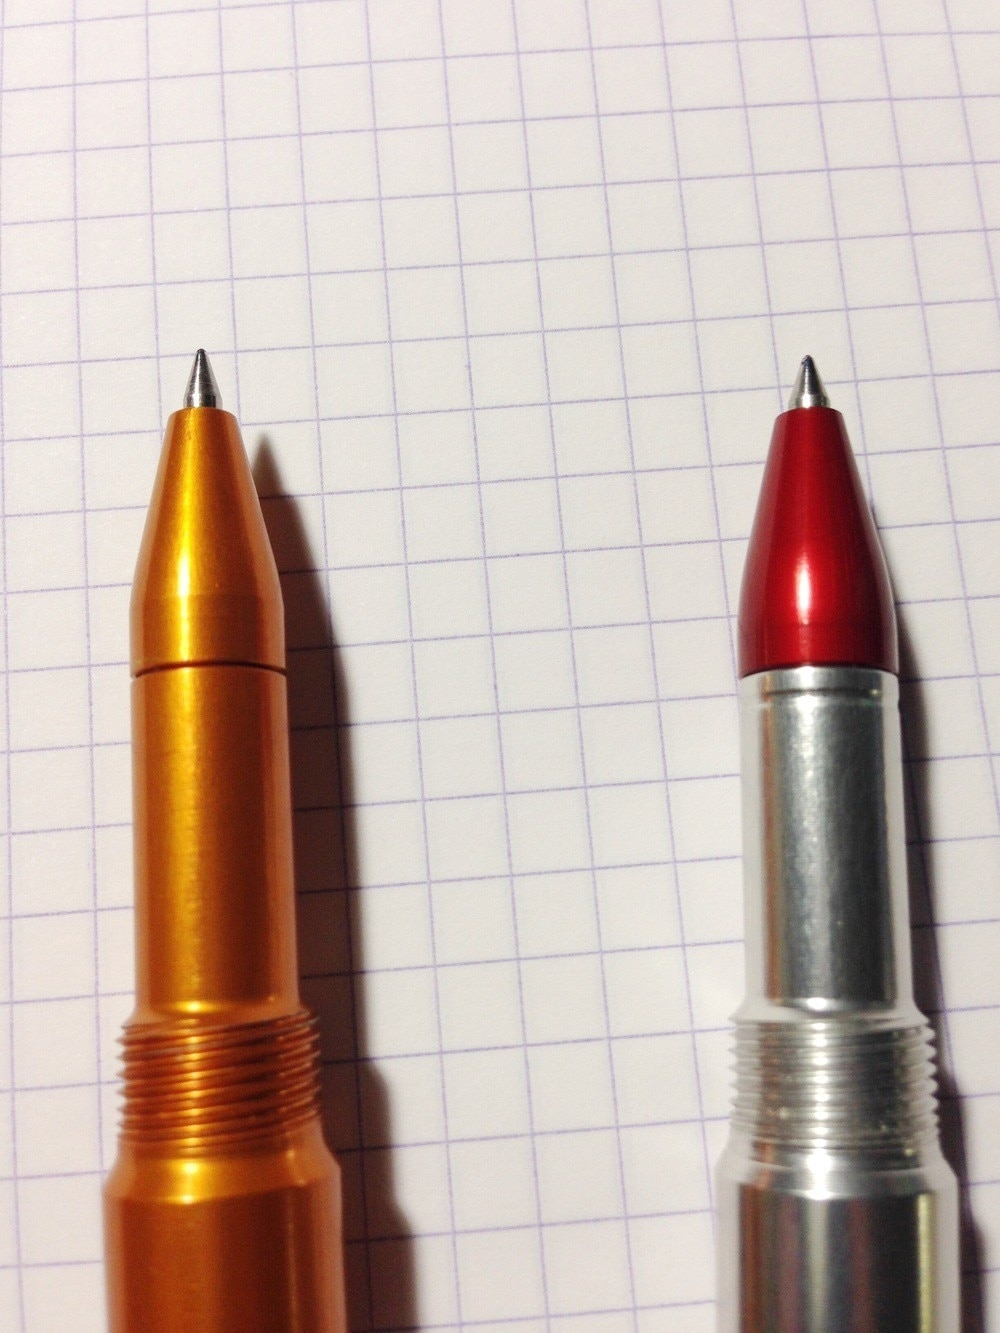 Regular Render K on the left, Render K G2 on the right. The G2 model has a small machined line below the tip